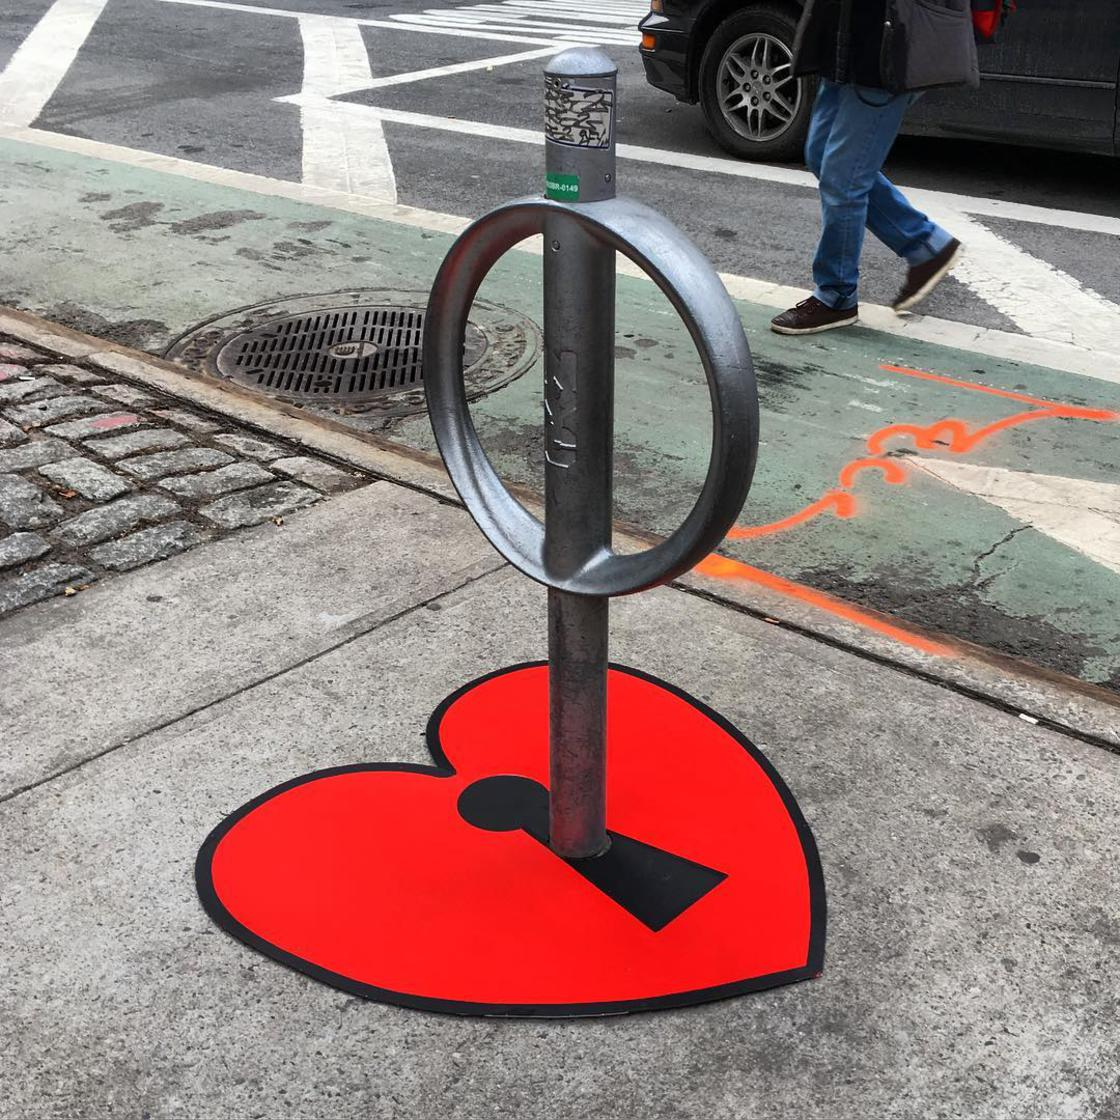 Le street art decale de Tom Bob envahit les rues de New York